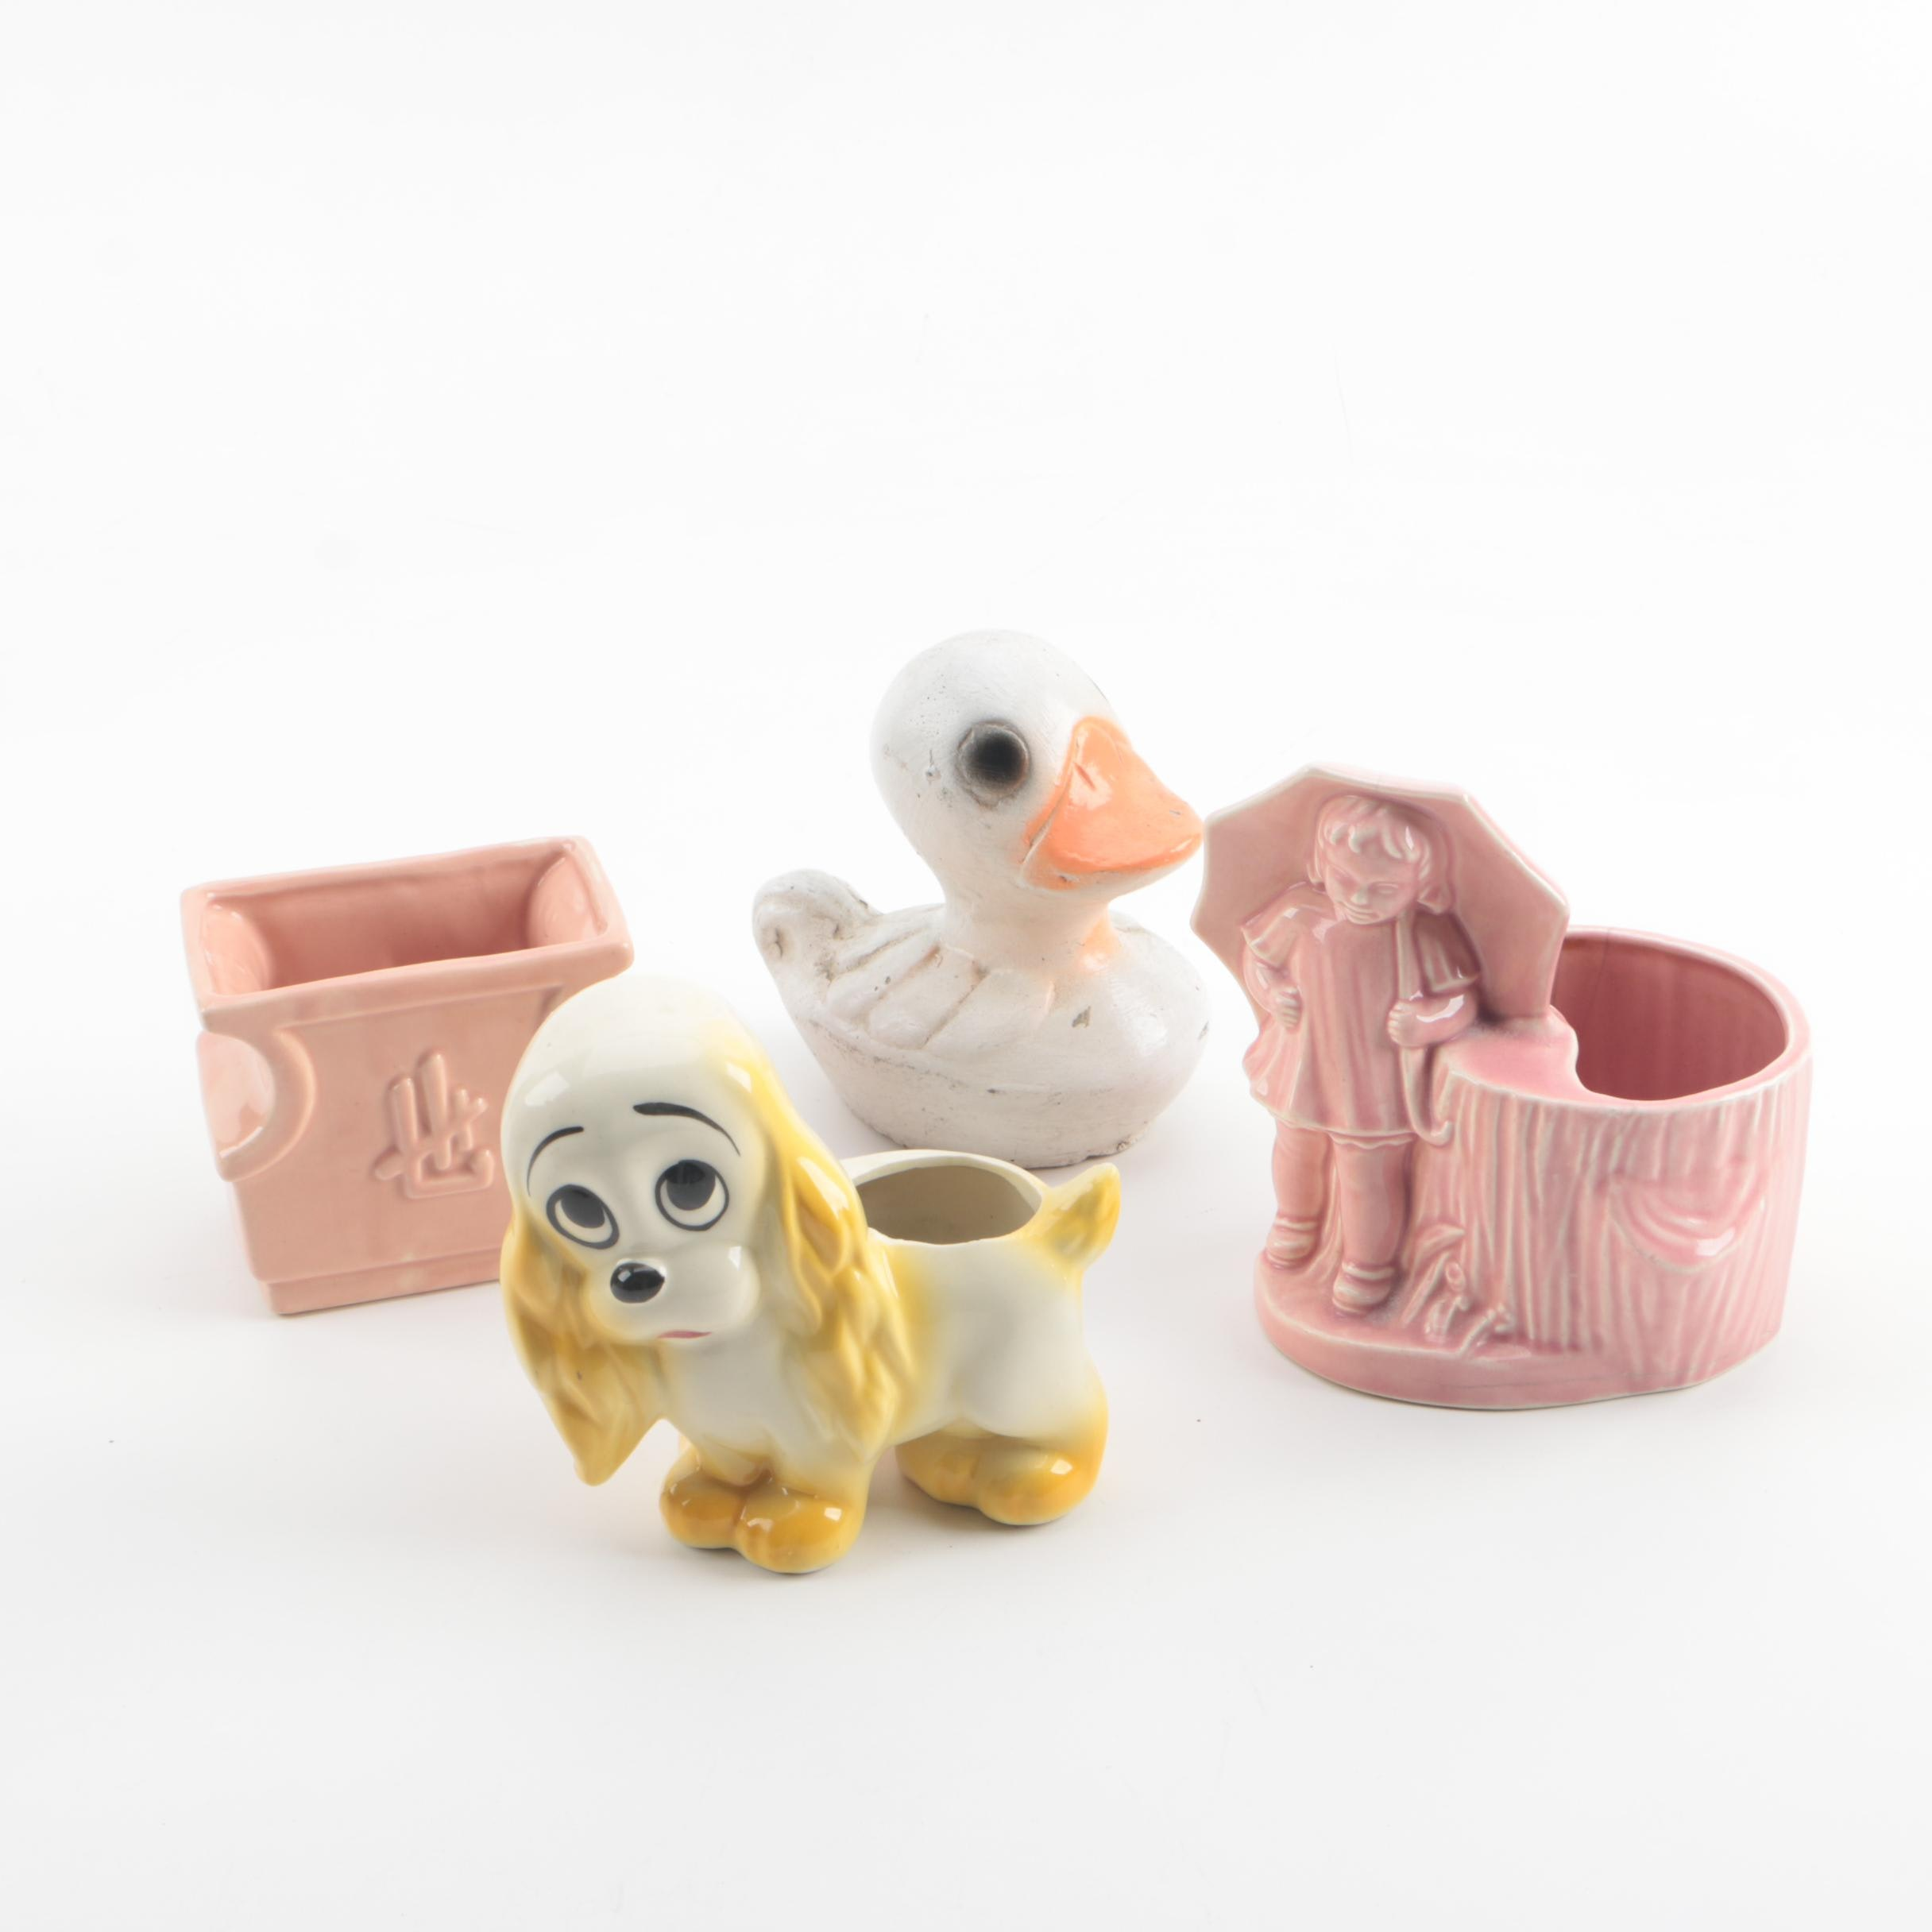 Vintage Ceramic Figurative and Chinoiserie Style Planters with Concrete Duck